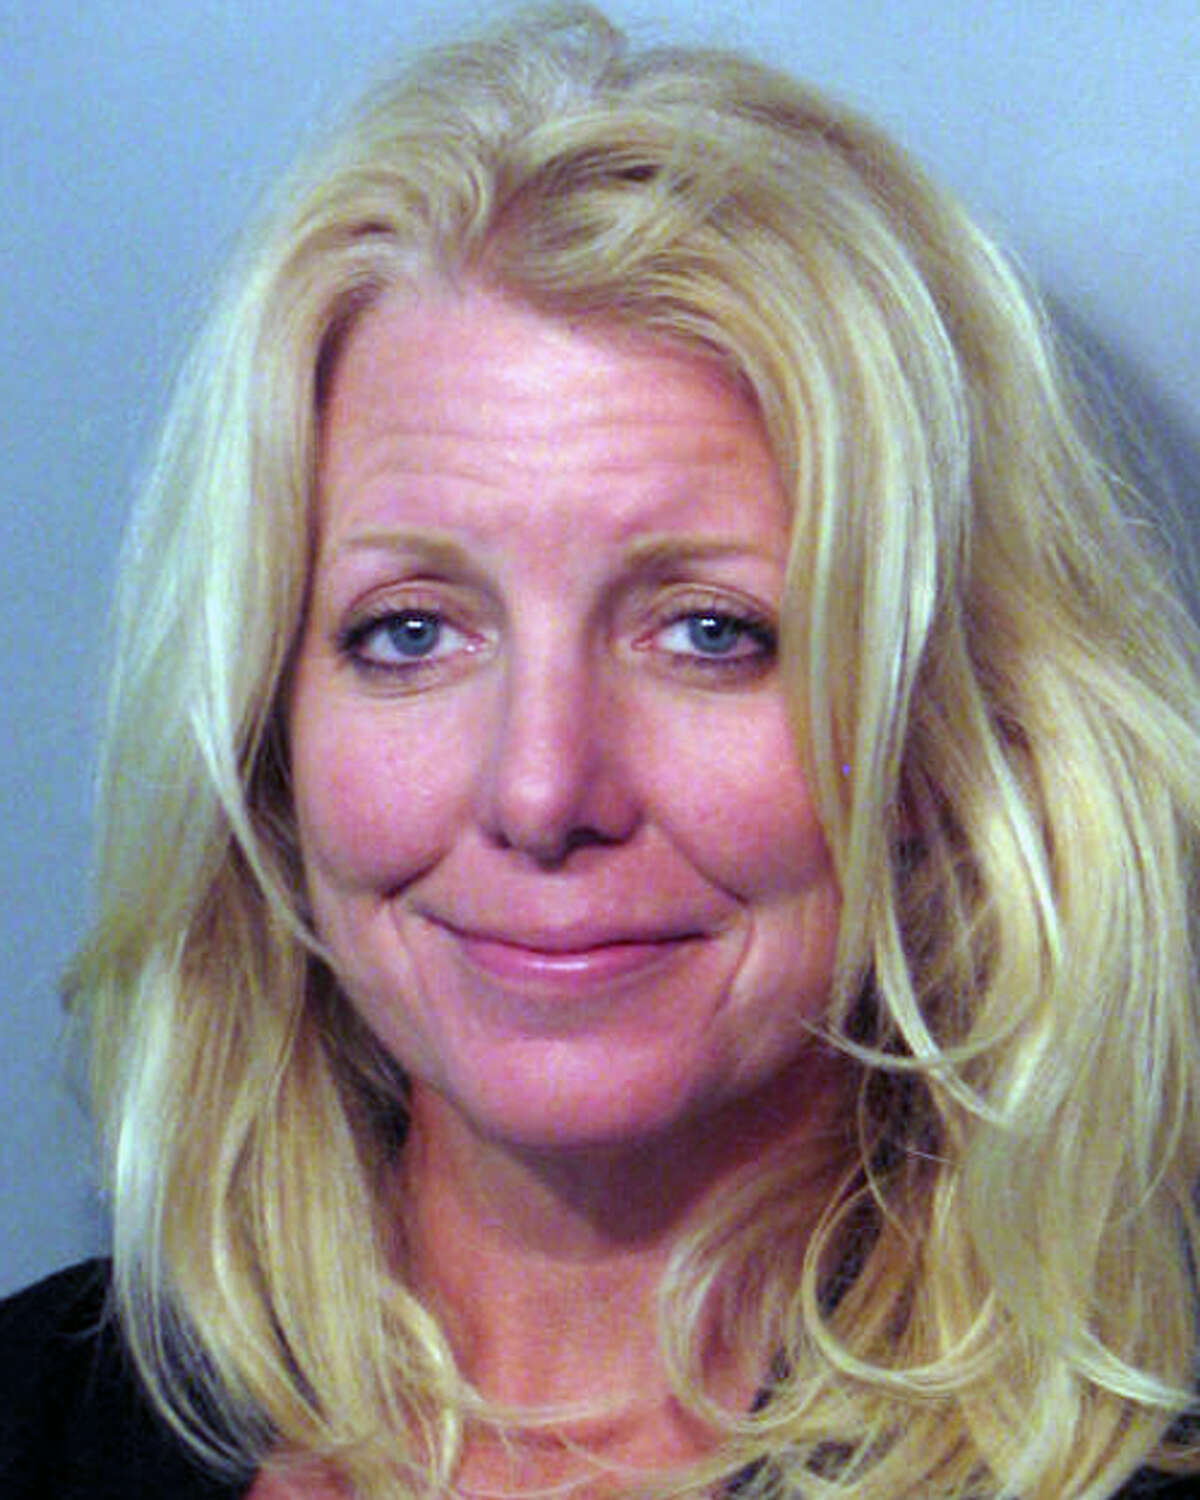 Christie Diane Biggers, 46, was arrested and charged with intoxicated assault.